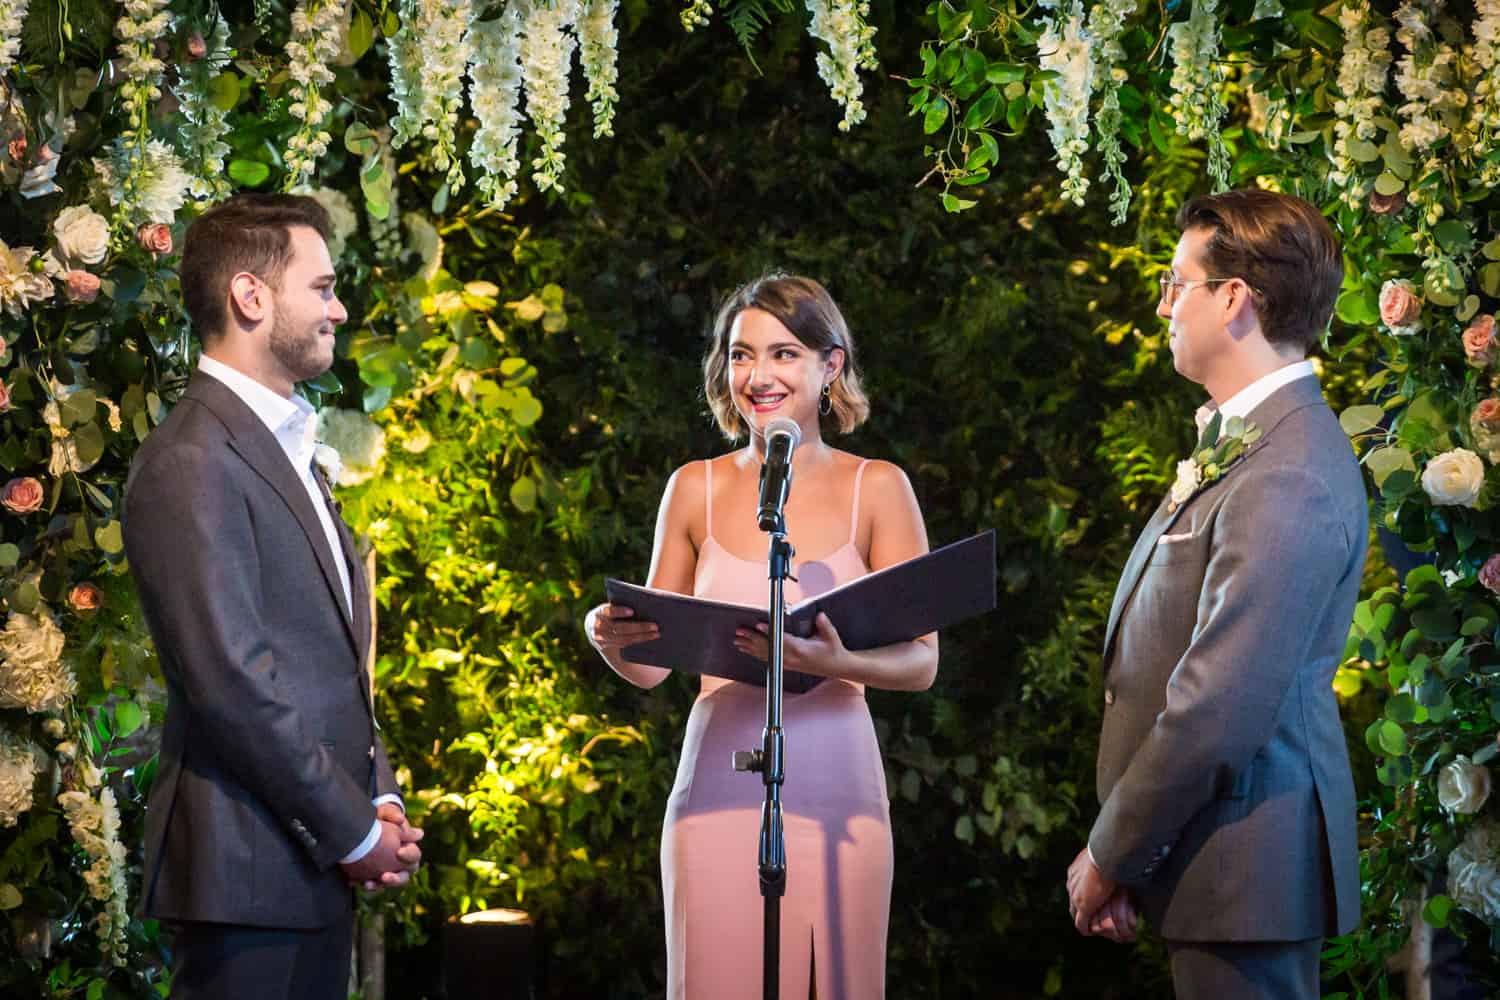 Greenpoint Loft wedding photos of woman speaking between two grooms during ceremony